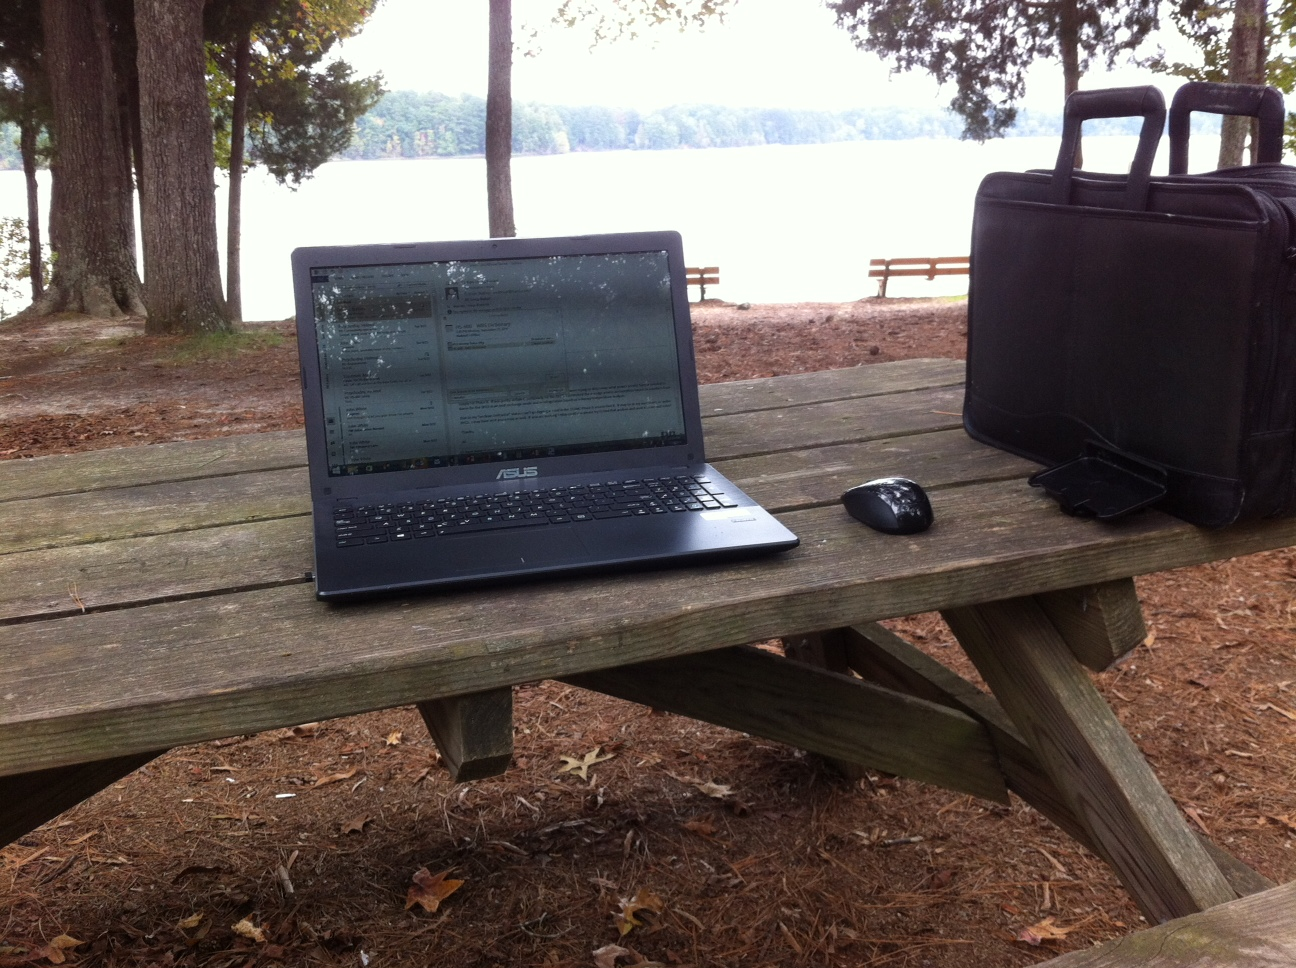 Click image for larger version  Name:Lake Wateree Office.jpg Views:59 Size:546.1 KB ID:223324